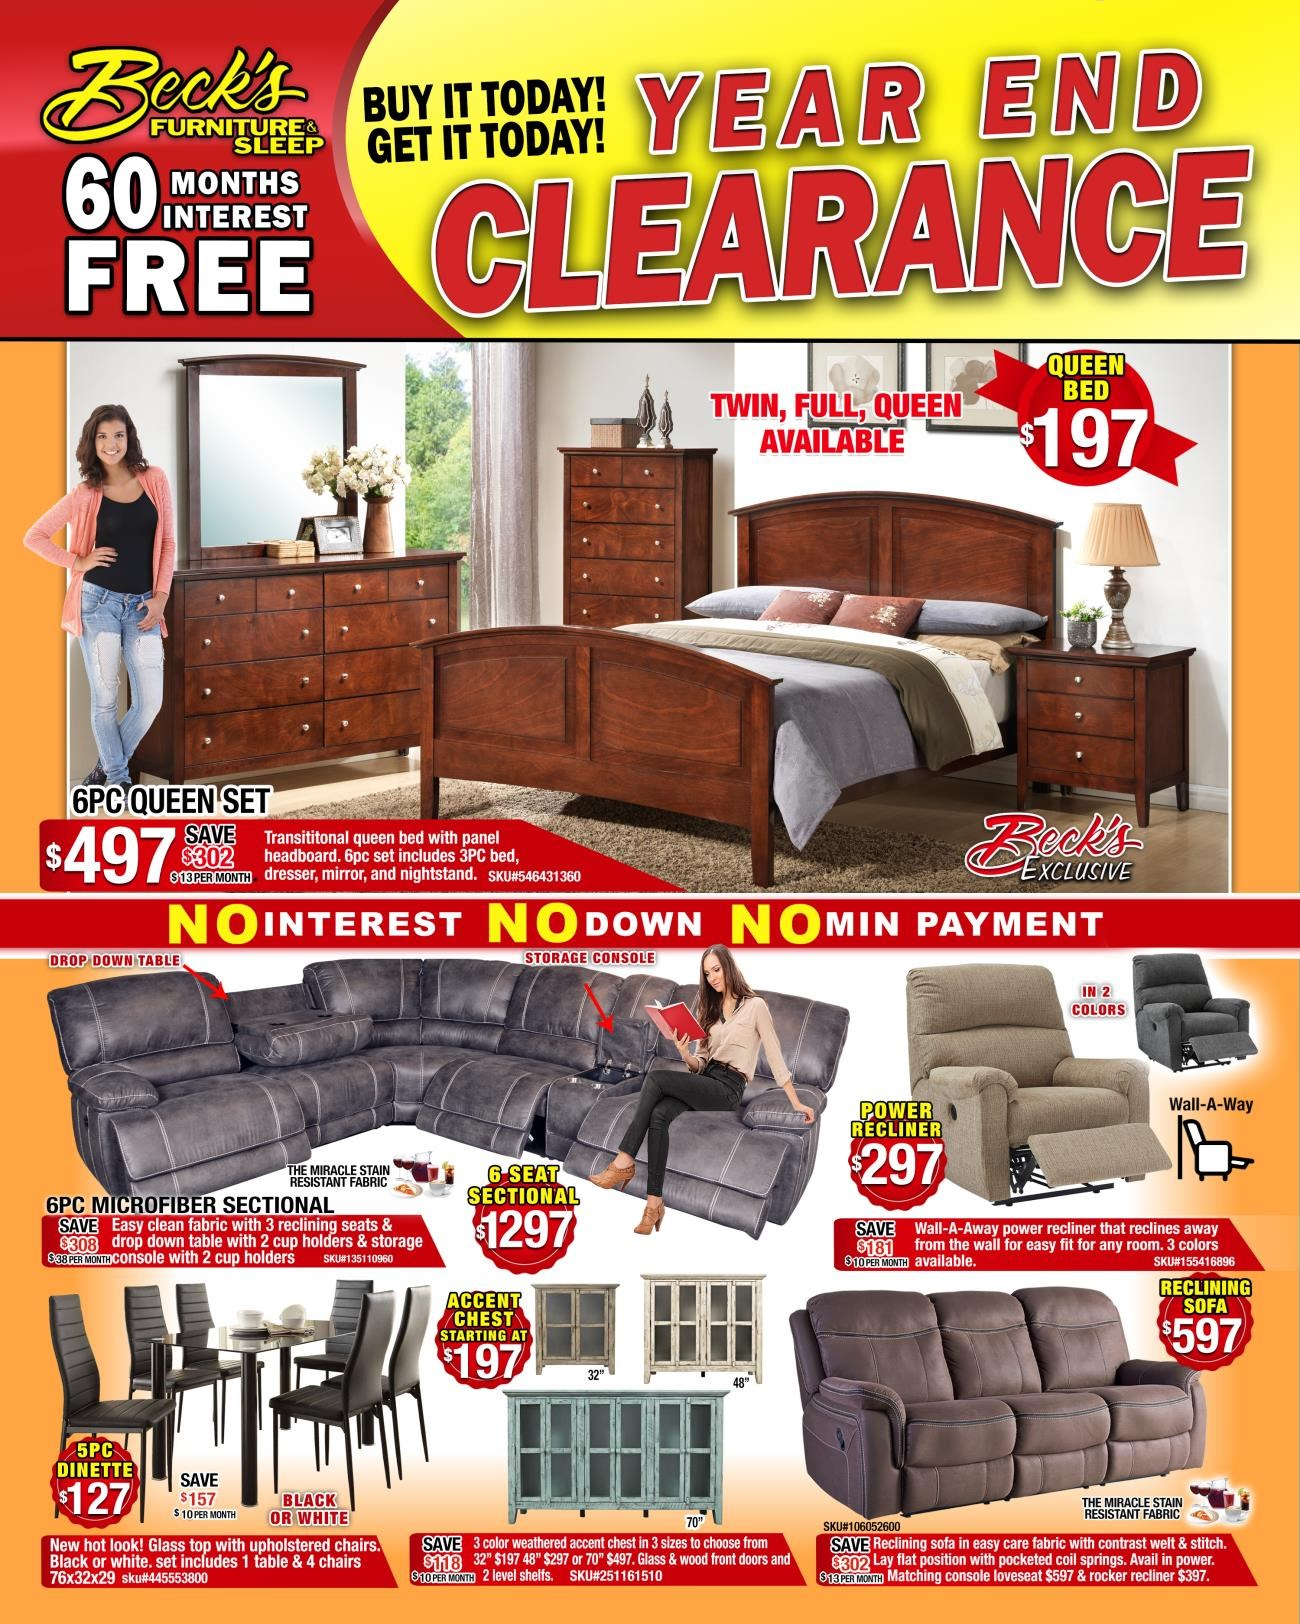 YEAR END CLEARANCE FRONTk jan 2nd